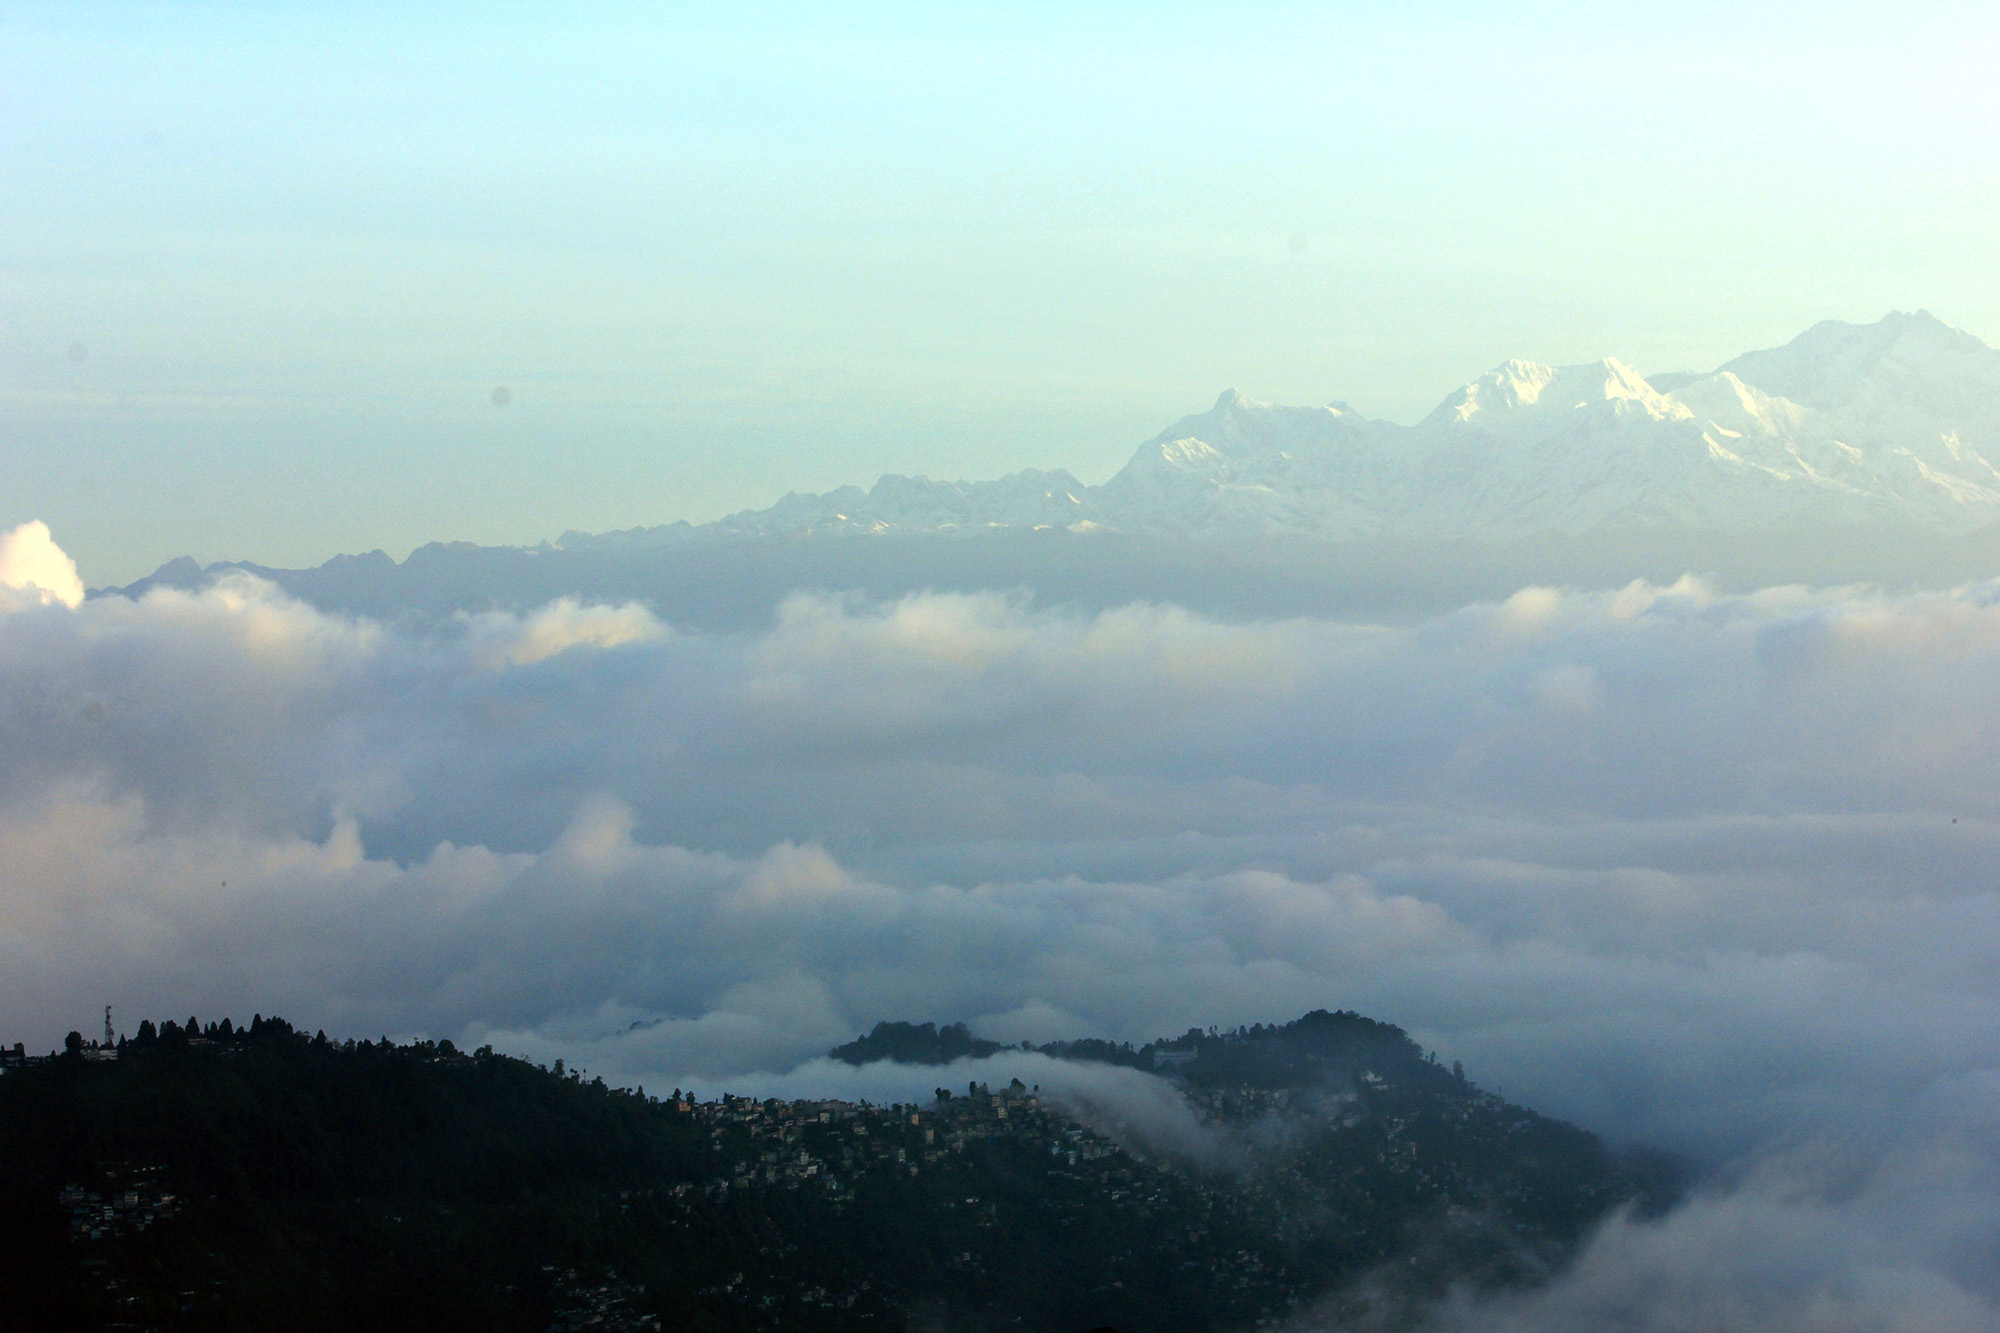 you can see in this photo queen of hill,Darjeeling along with Kanchenjunga.